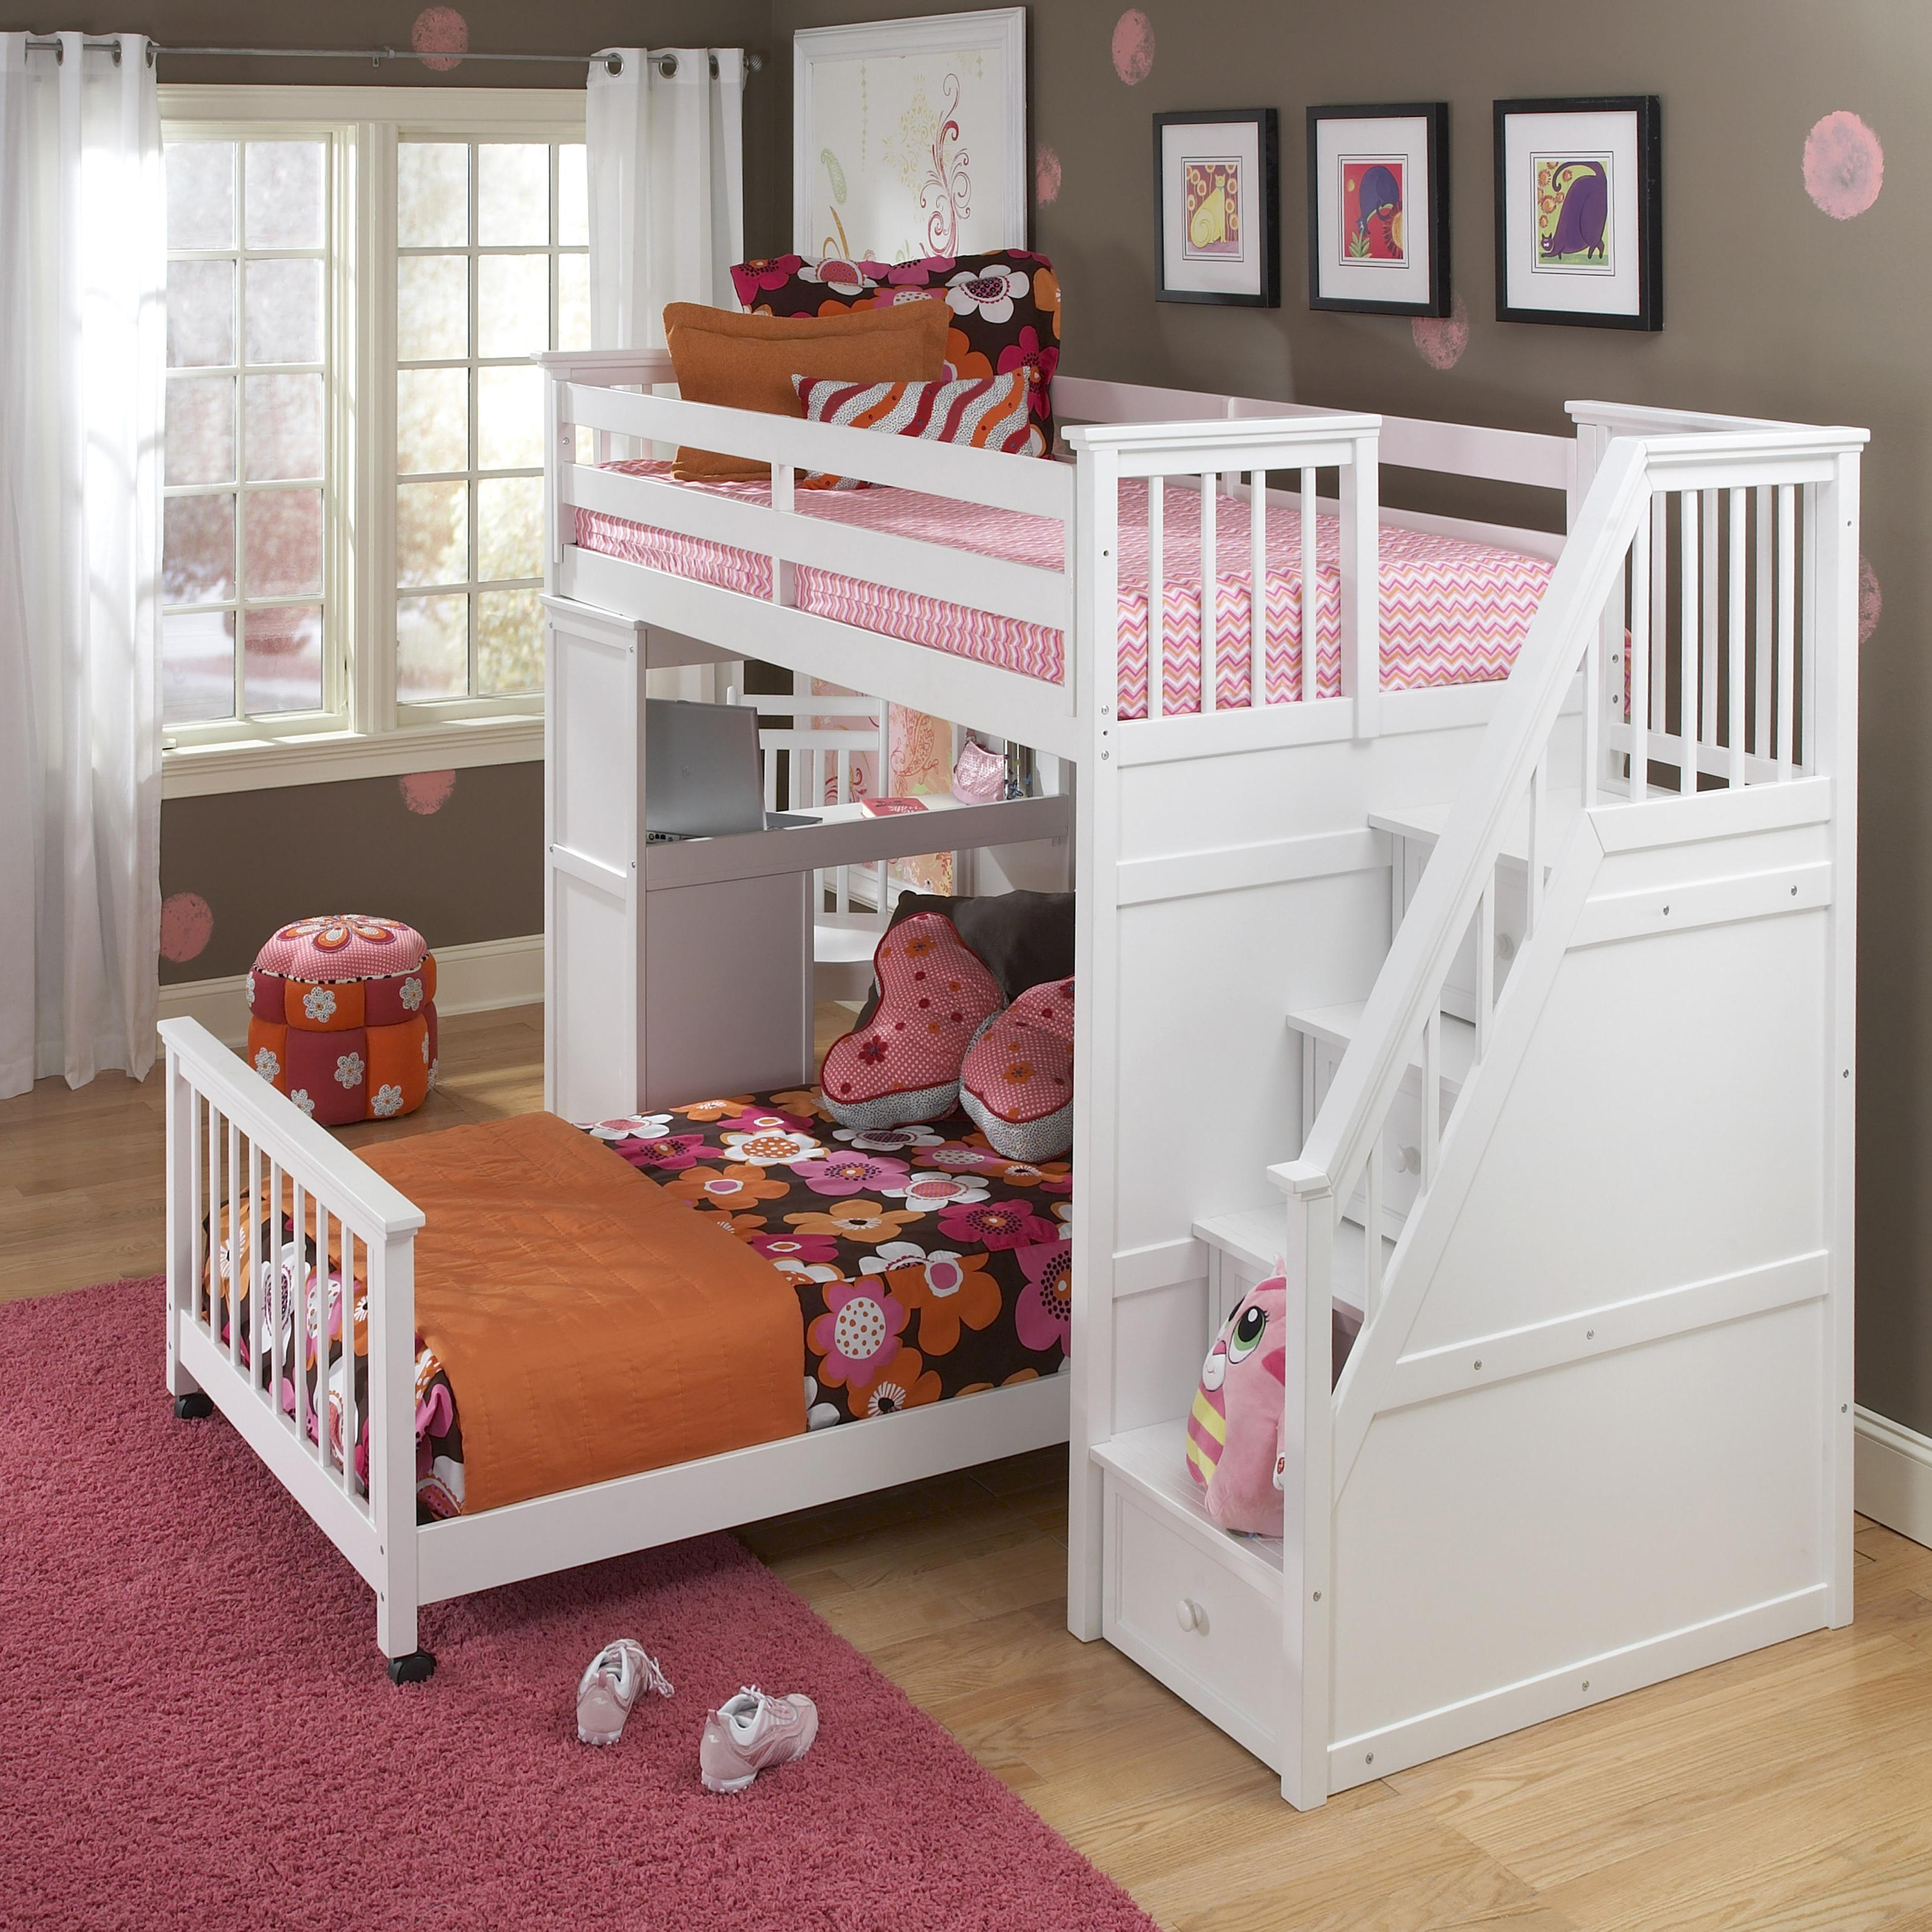 New Loft Bed with Pull Out Bed